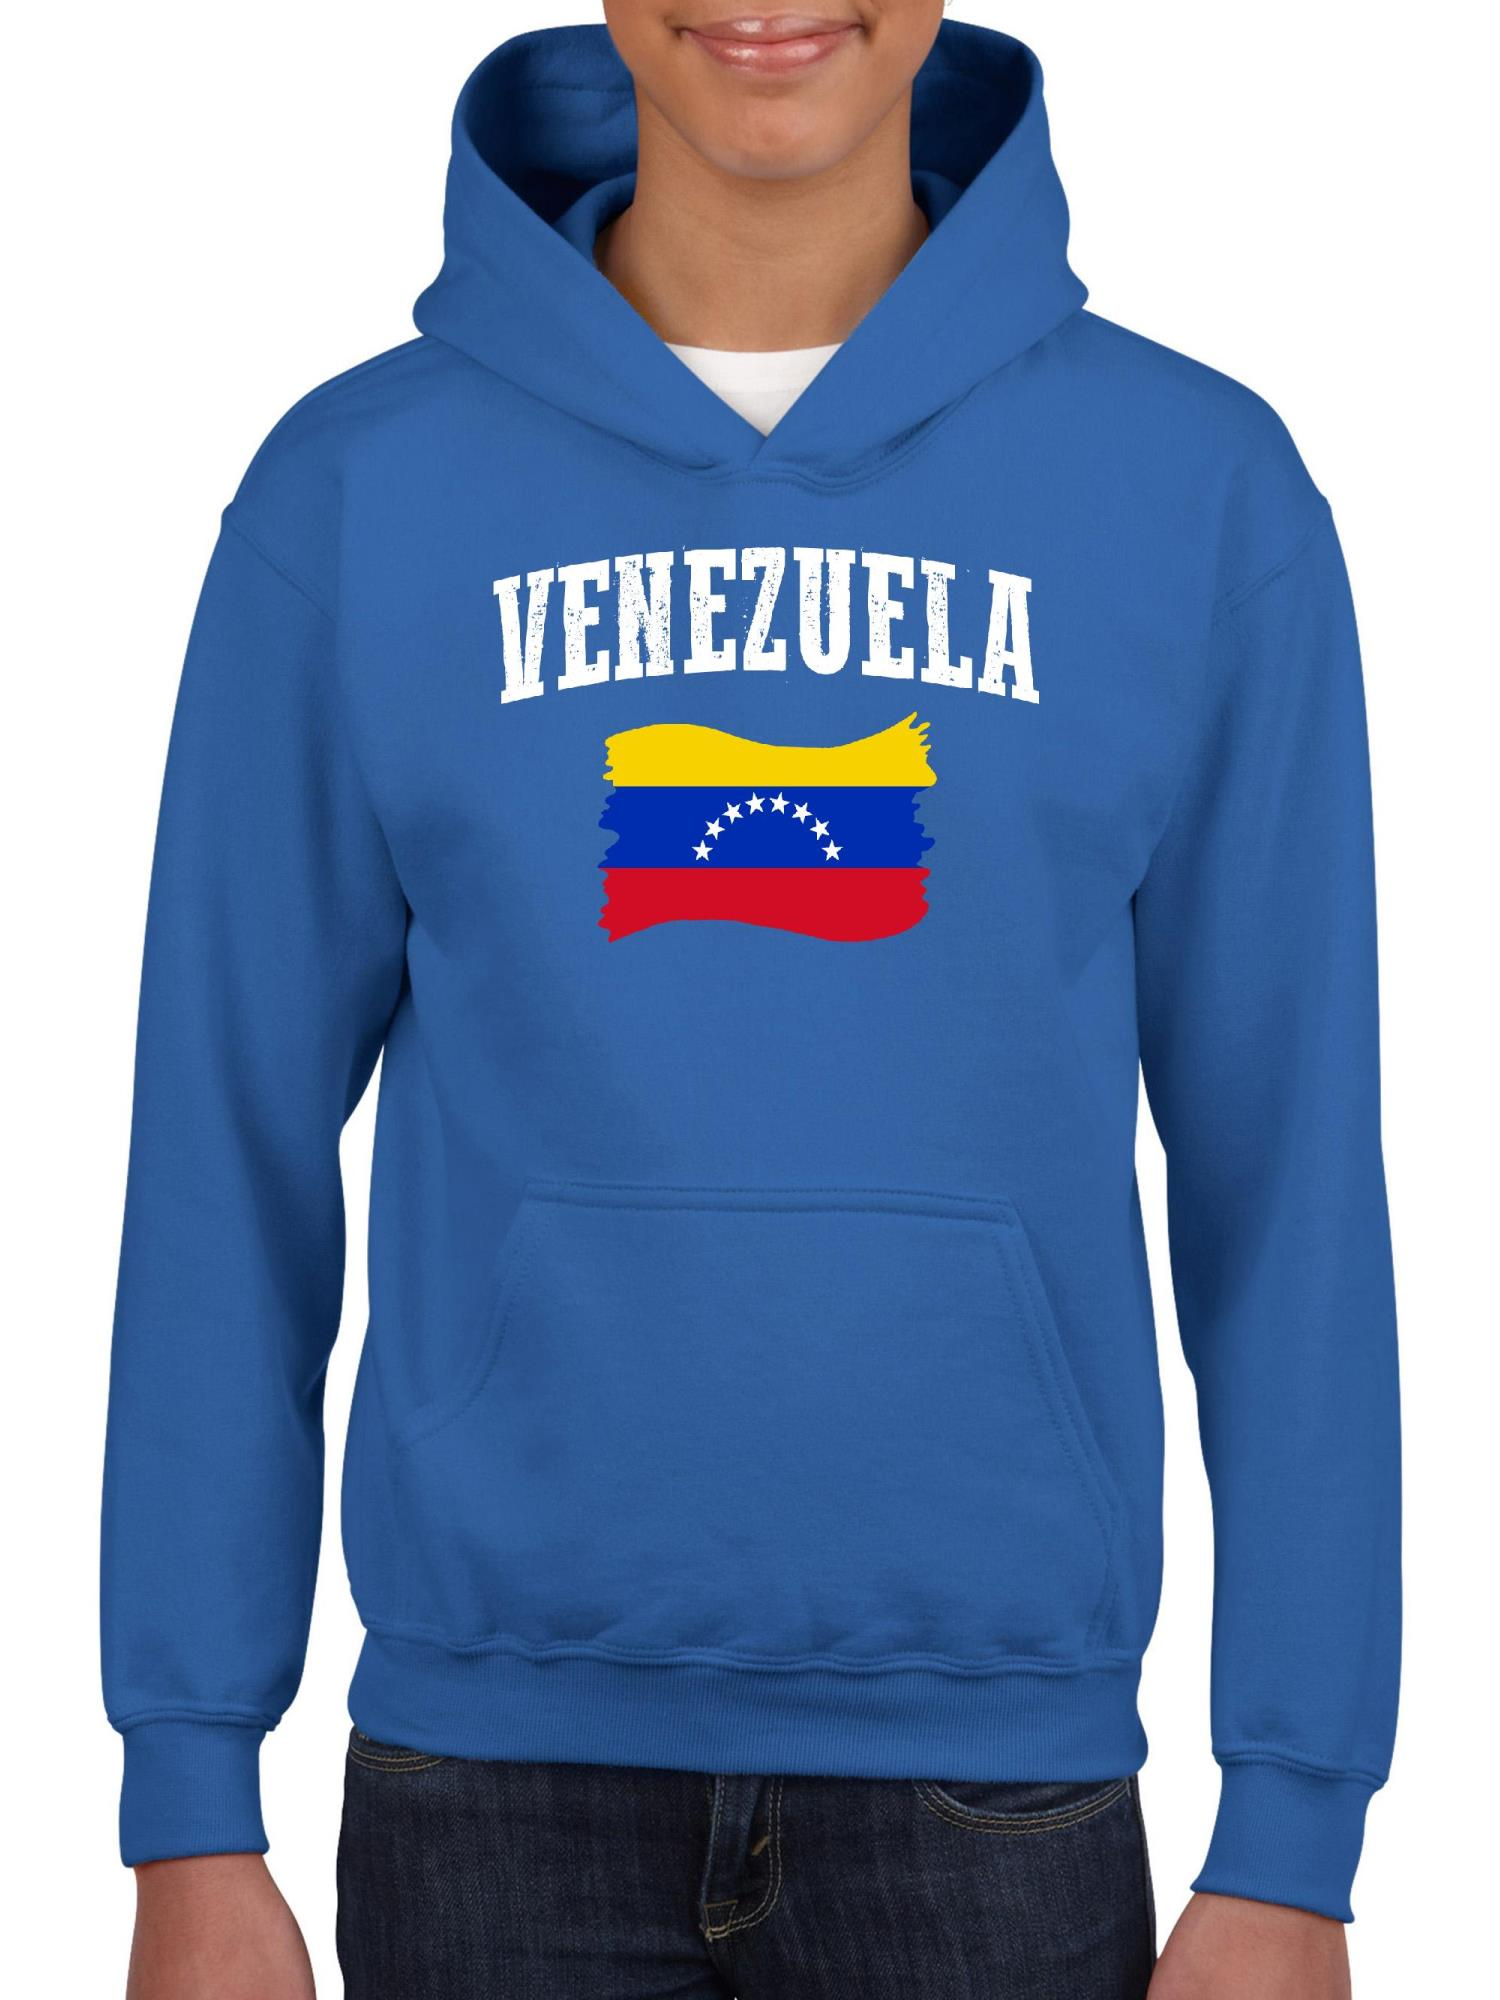 Venezuela Flag Sea Turtle Children Boys Girls Long Sleeve Sweatshirts Hooded Hoodie 2-6T